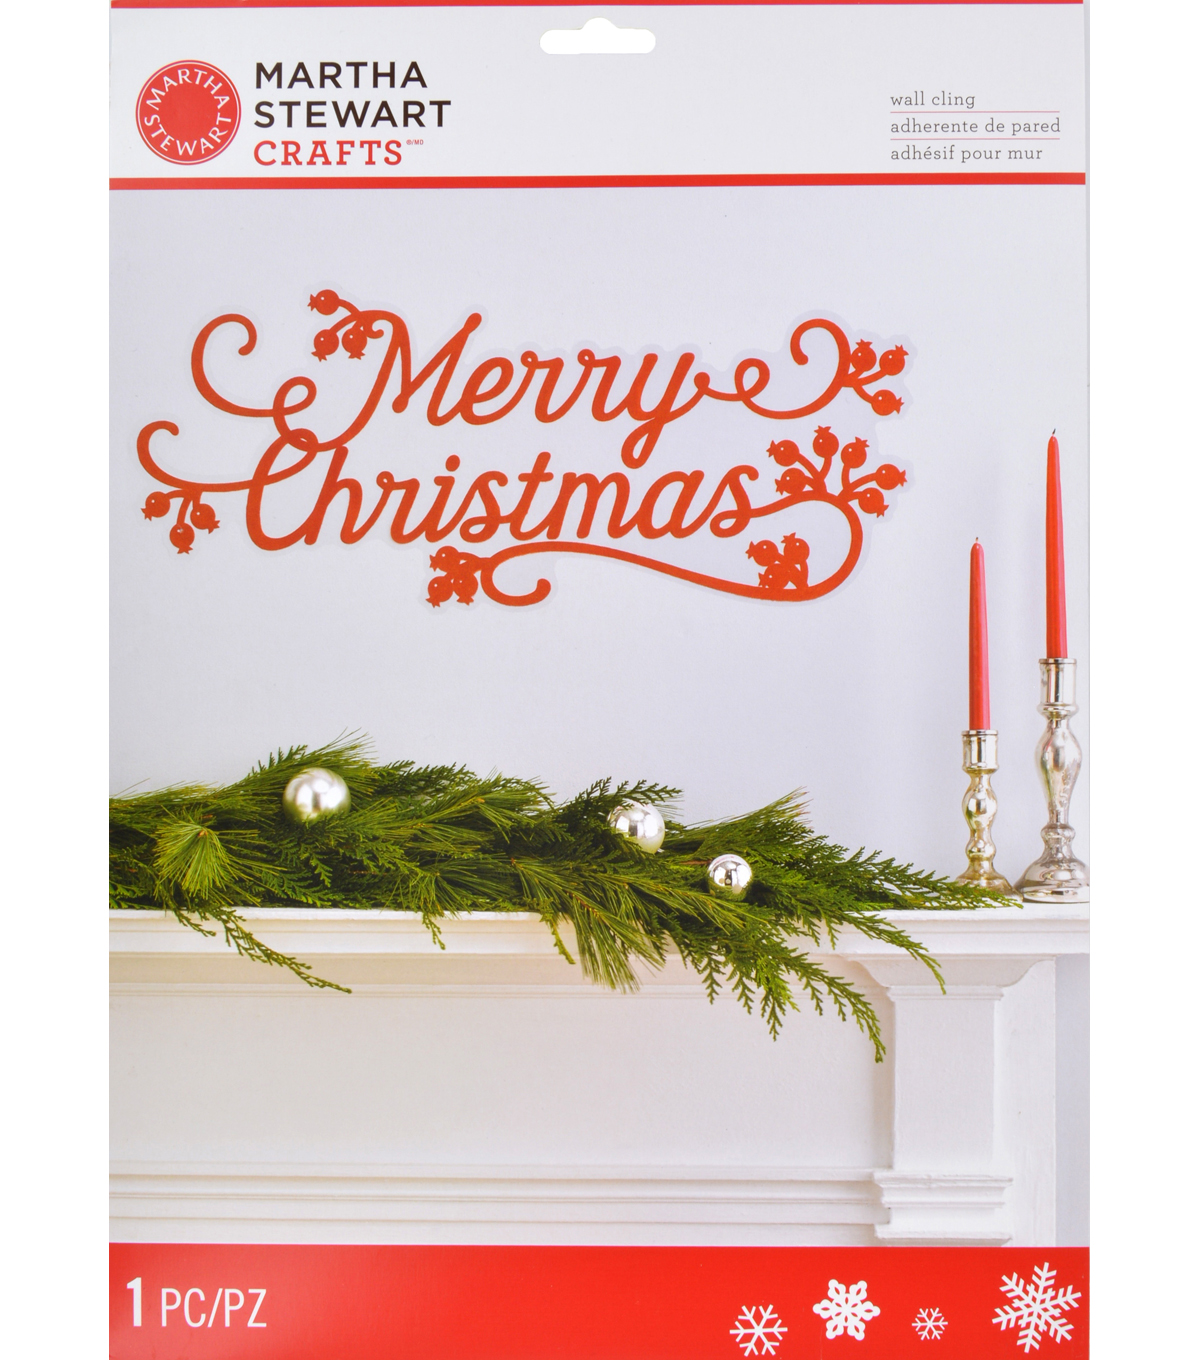 Martha Stewart Crafts Holiday Lodge Merry Christmas Wall Cling